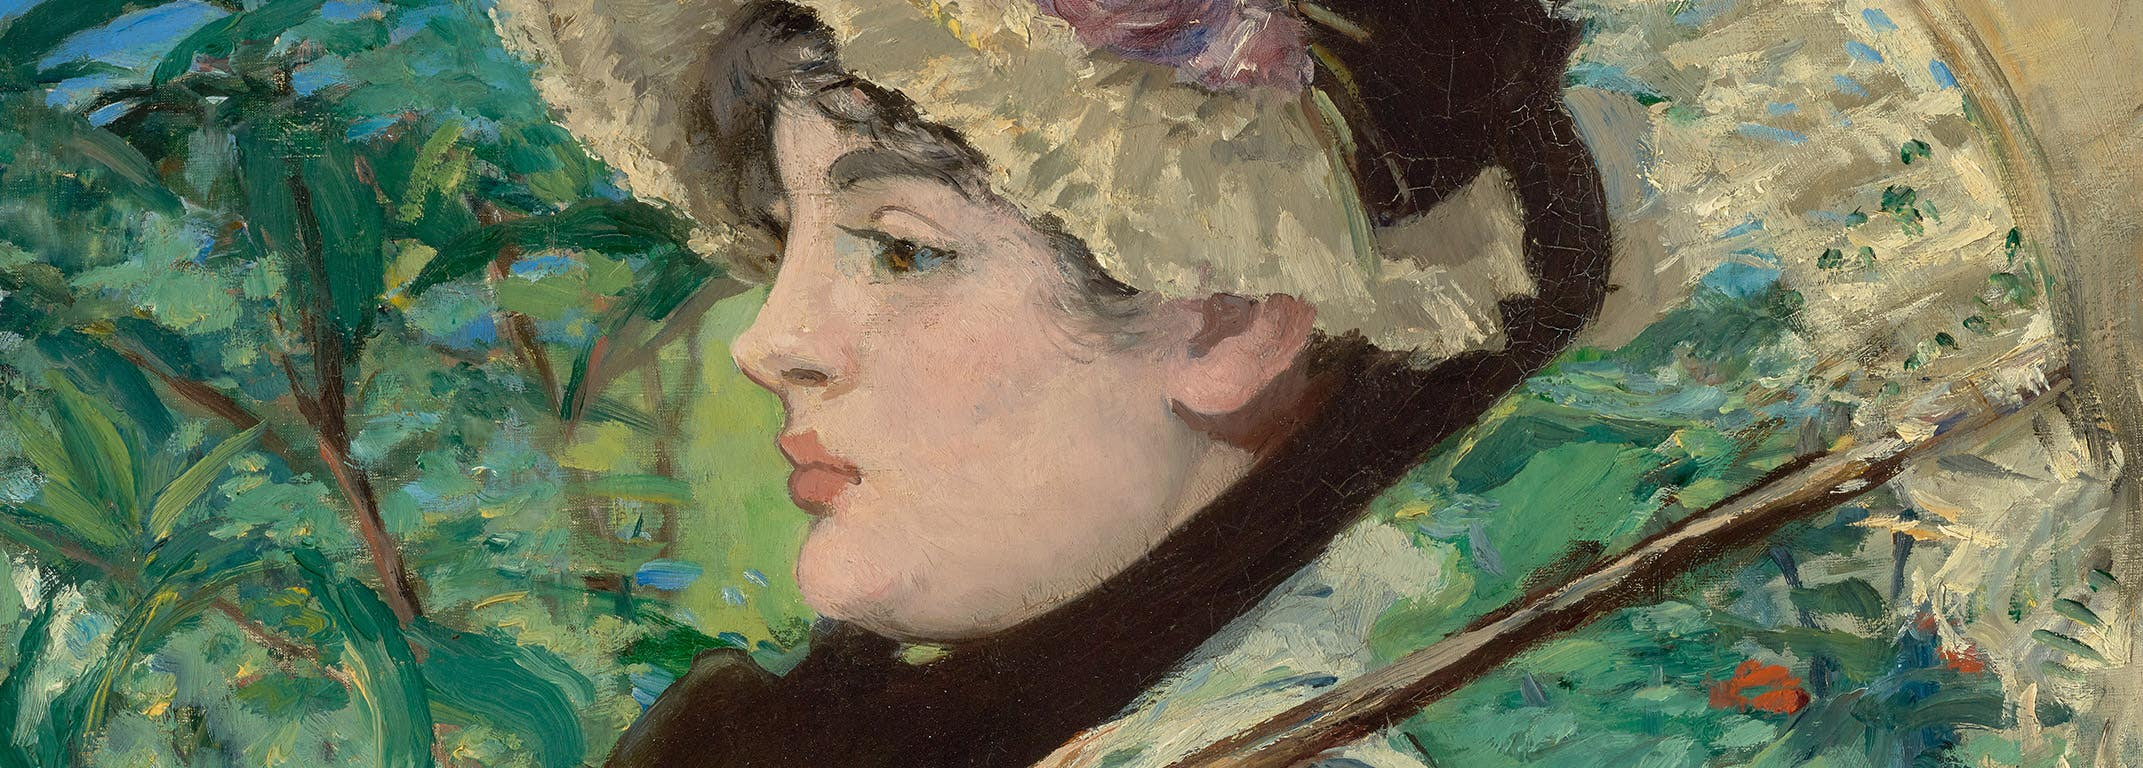 """""""Jeanne (Spring)"""" by Édouard Manet at the Getty Center"""